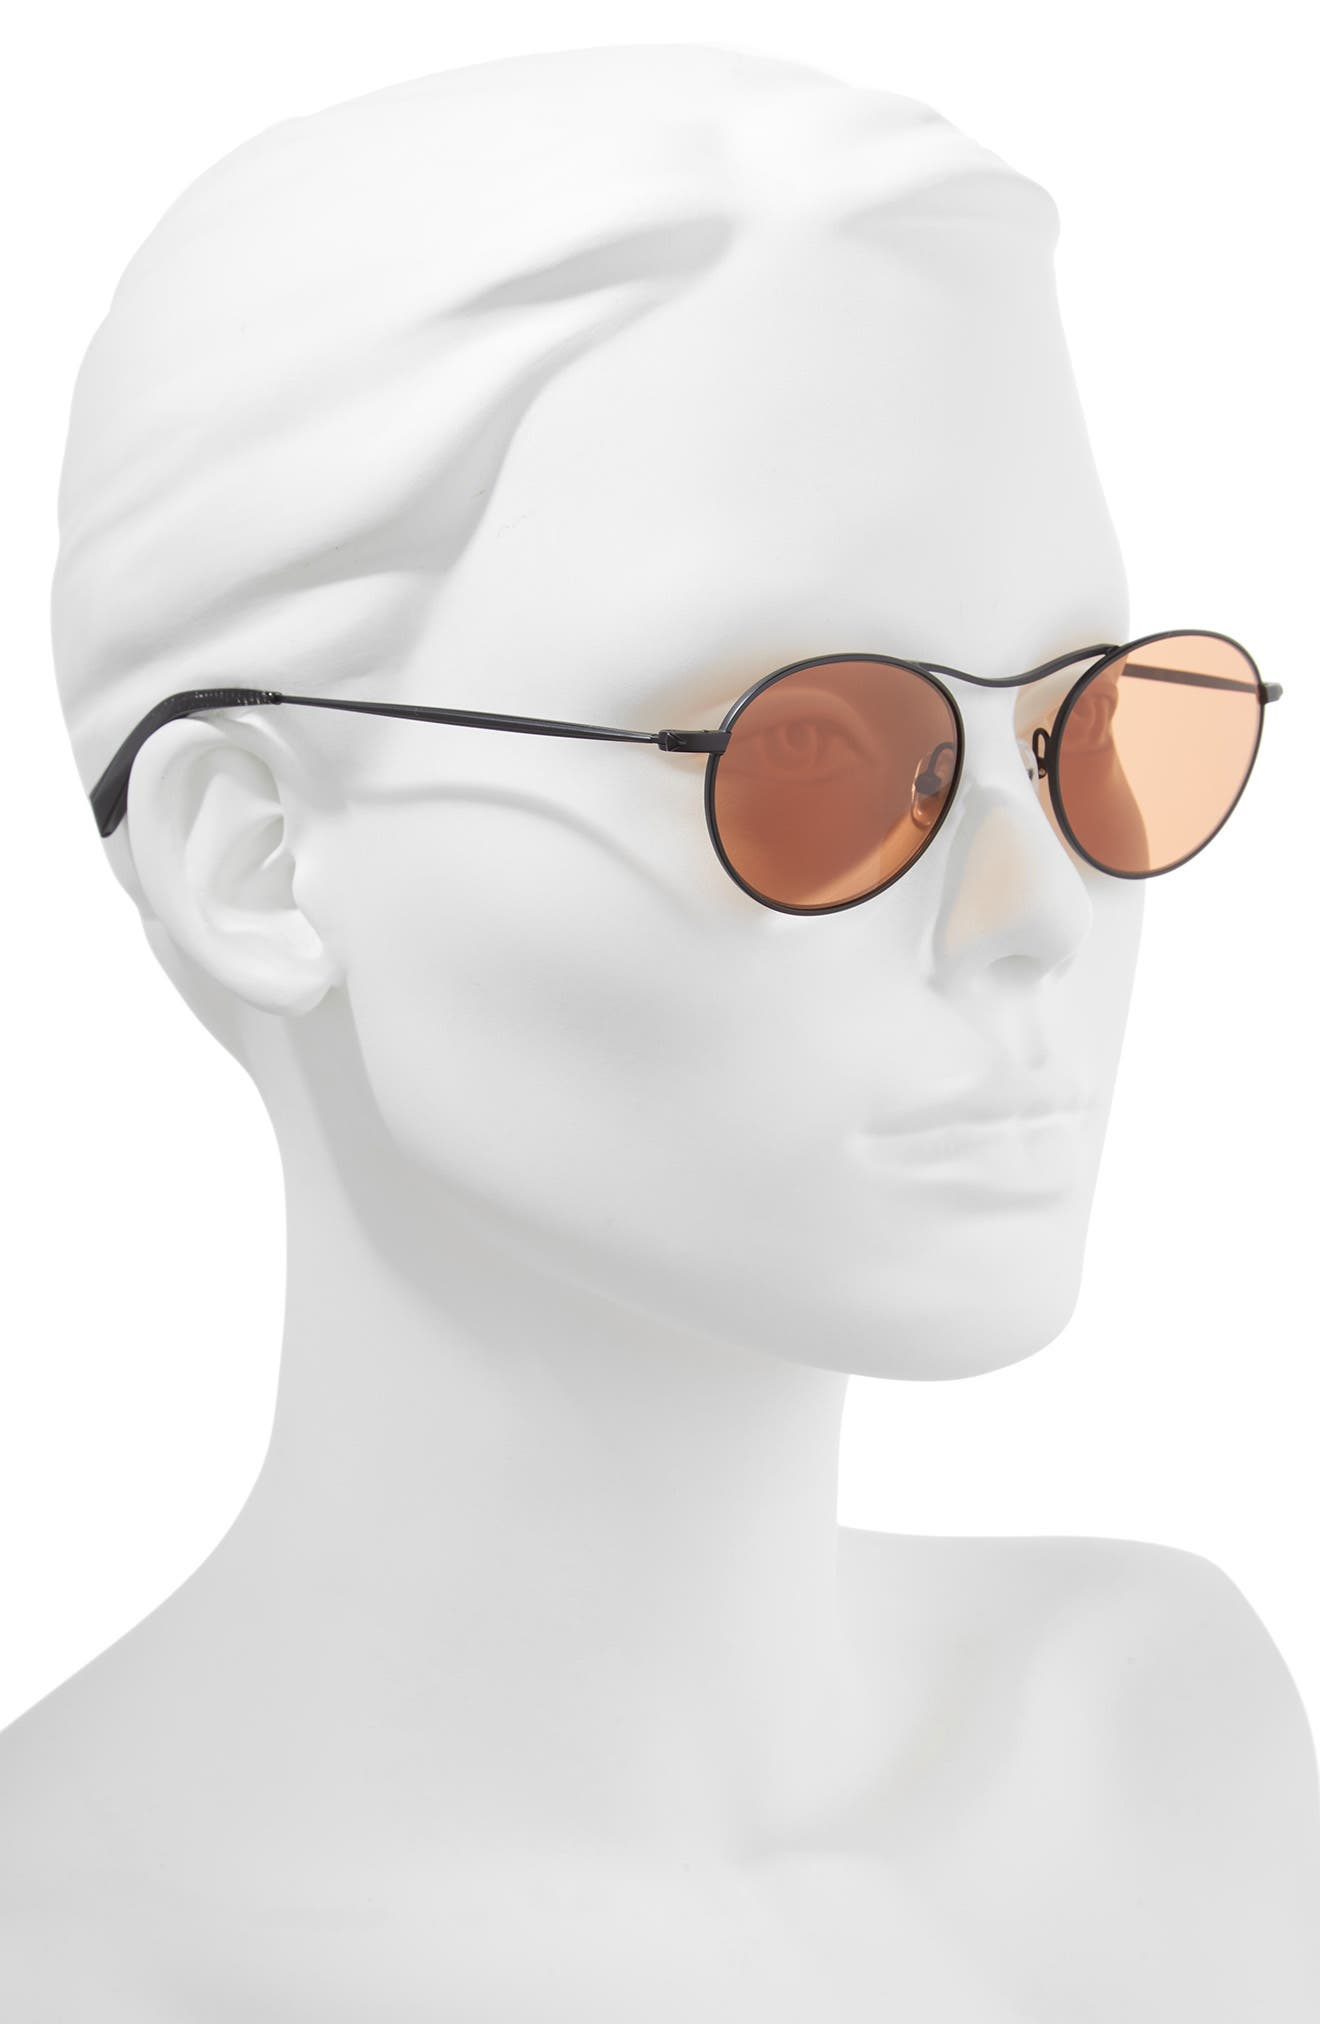 KENDALL + KYLIE,                             Tasha 49mm Oval Sunglasses,                             Alternate thumbnail 2, color,                             005